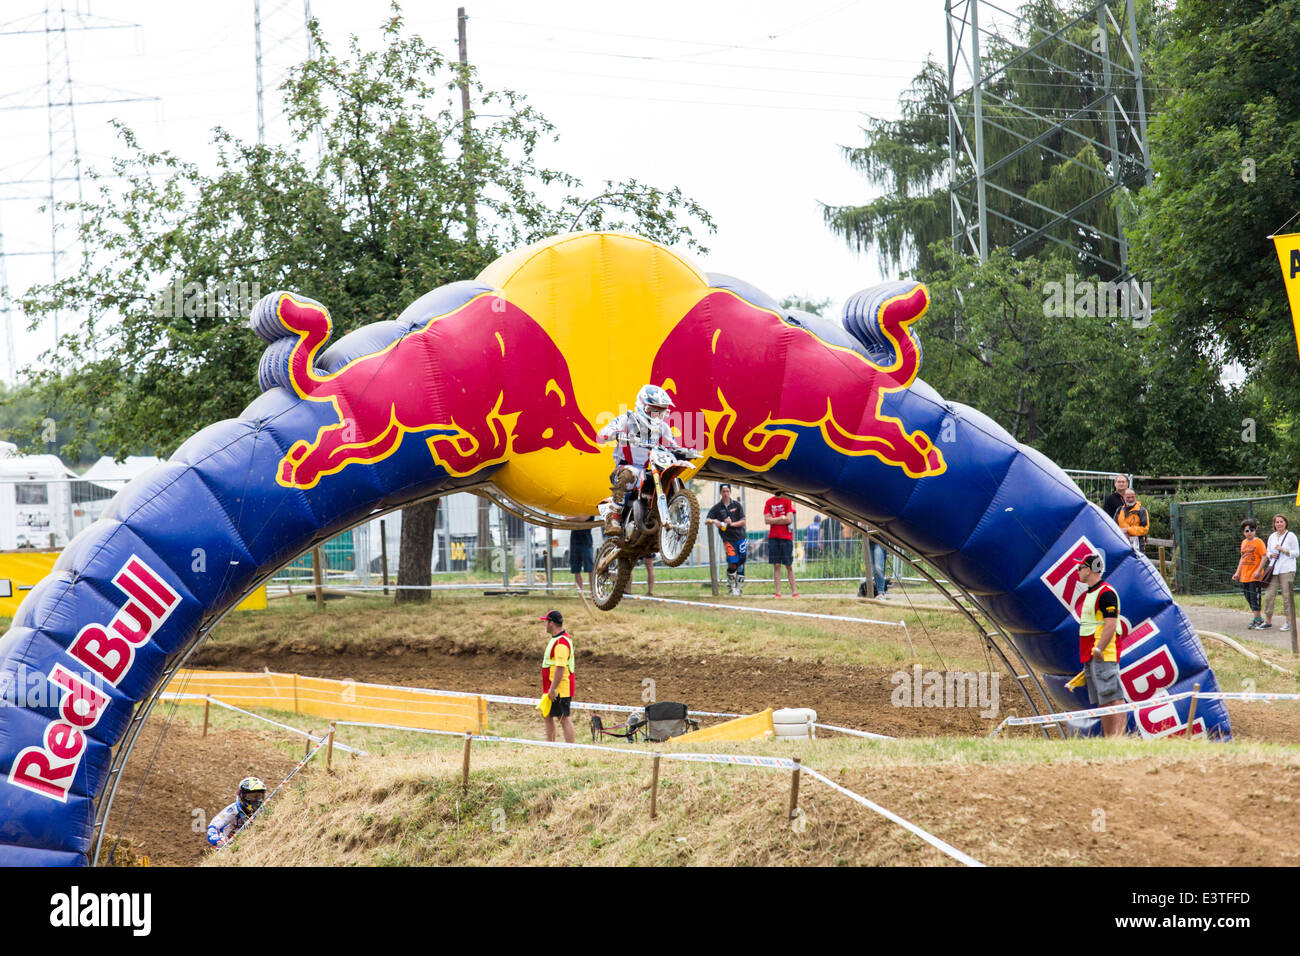 Aichwald, Germany. 27th June, 2014. Motocross ADAC MX Masters 2014 with ' RED BULL' sponsor. Motocross rider - Stock Image